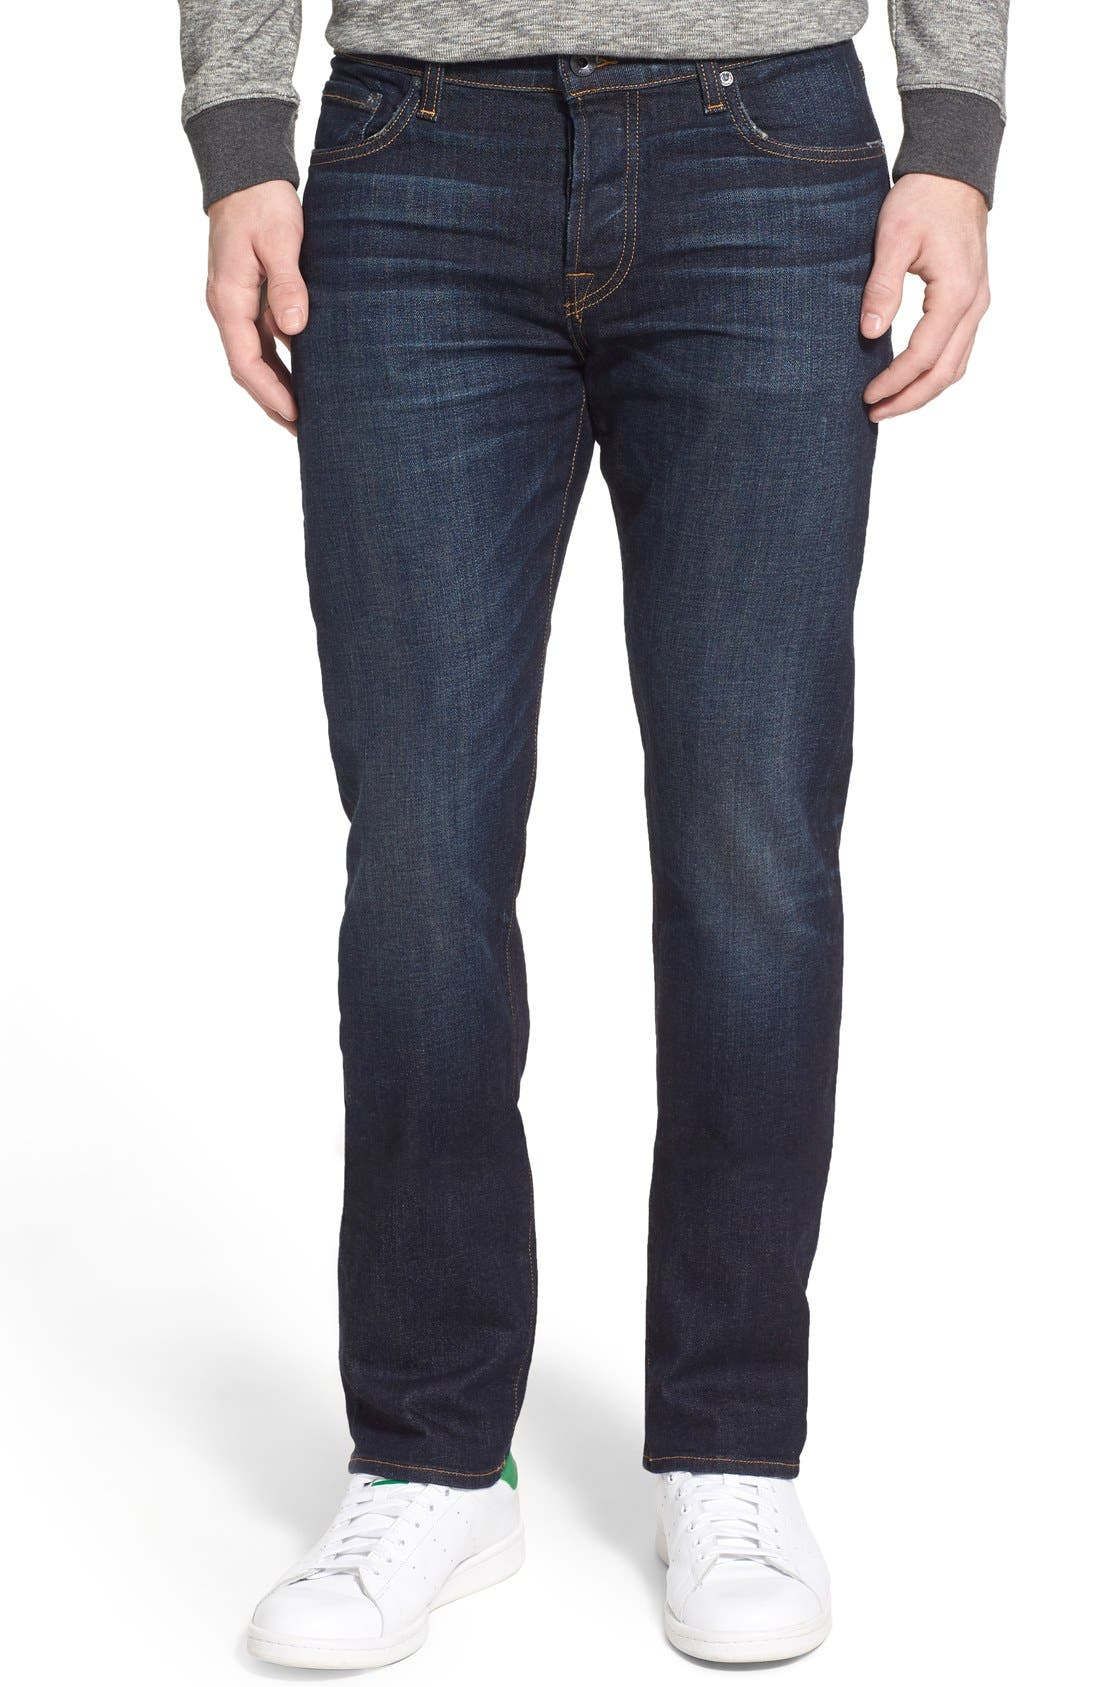 BALDWIN,                             'Henley' Slim Fit Jeans,                             Main thumbnail 1, color,                             409